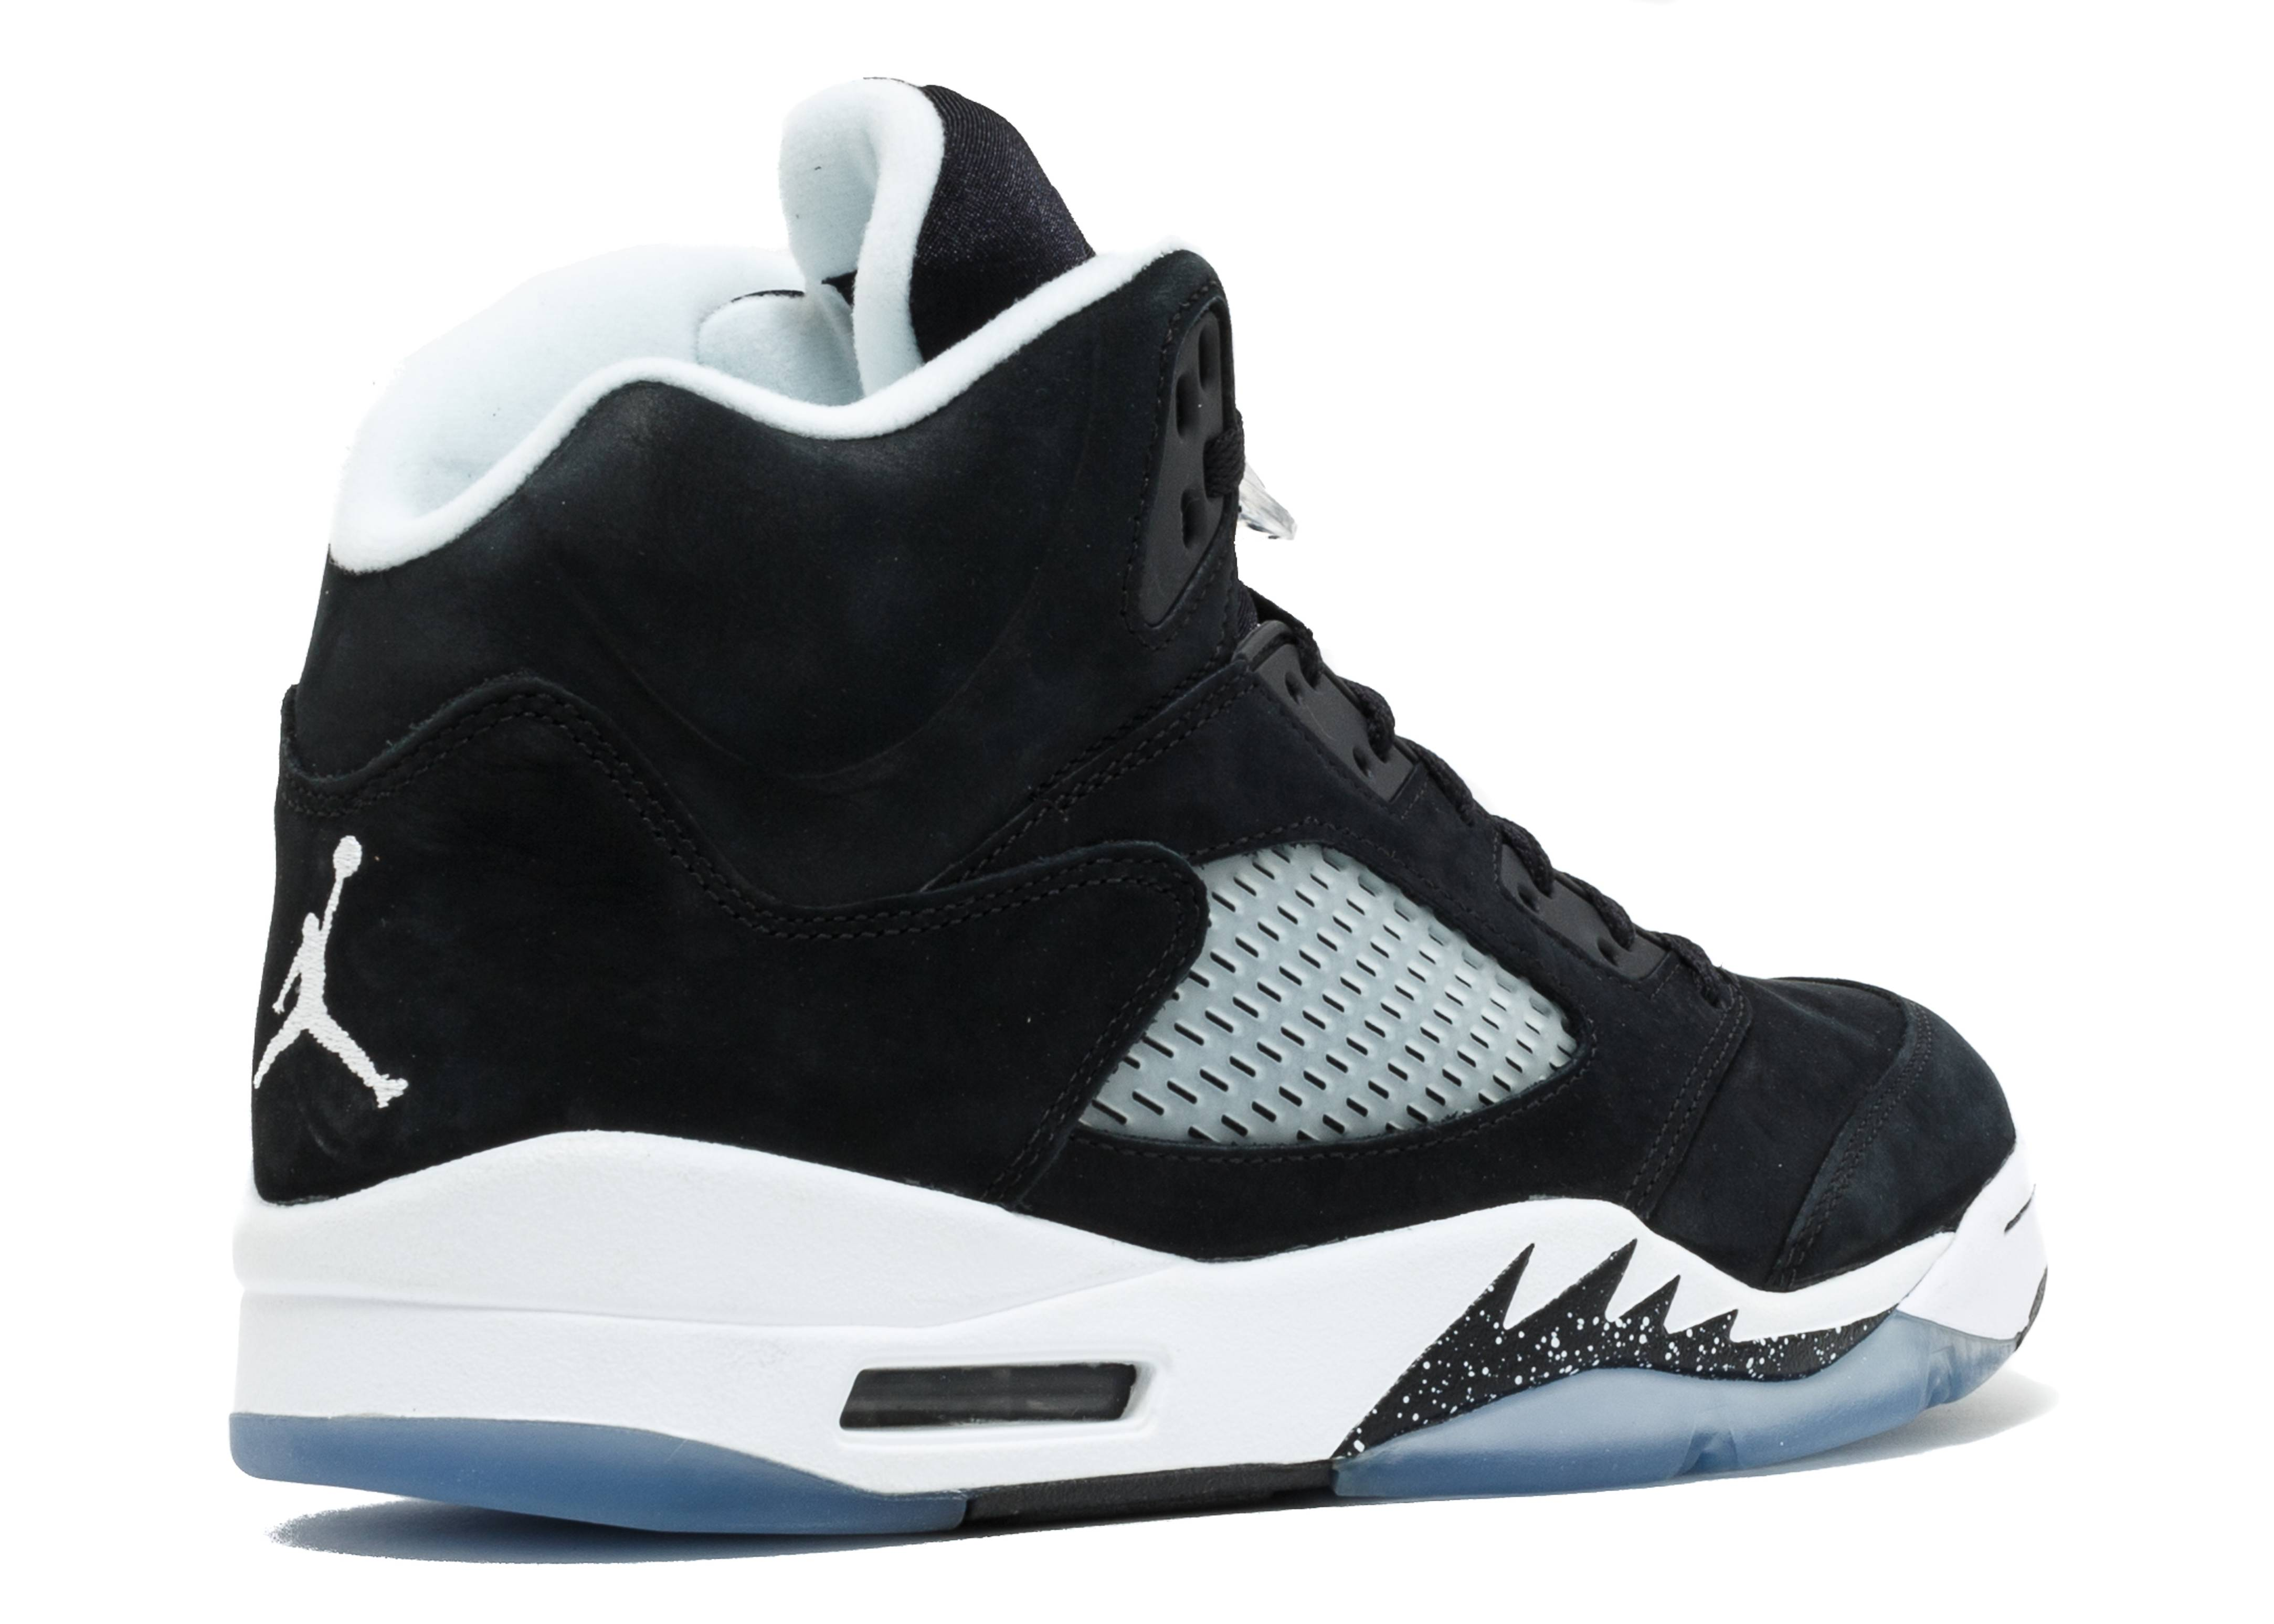 separation shoes 0e537 13999 ... ireland air jordan 5 retro oreo d433d 780f4